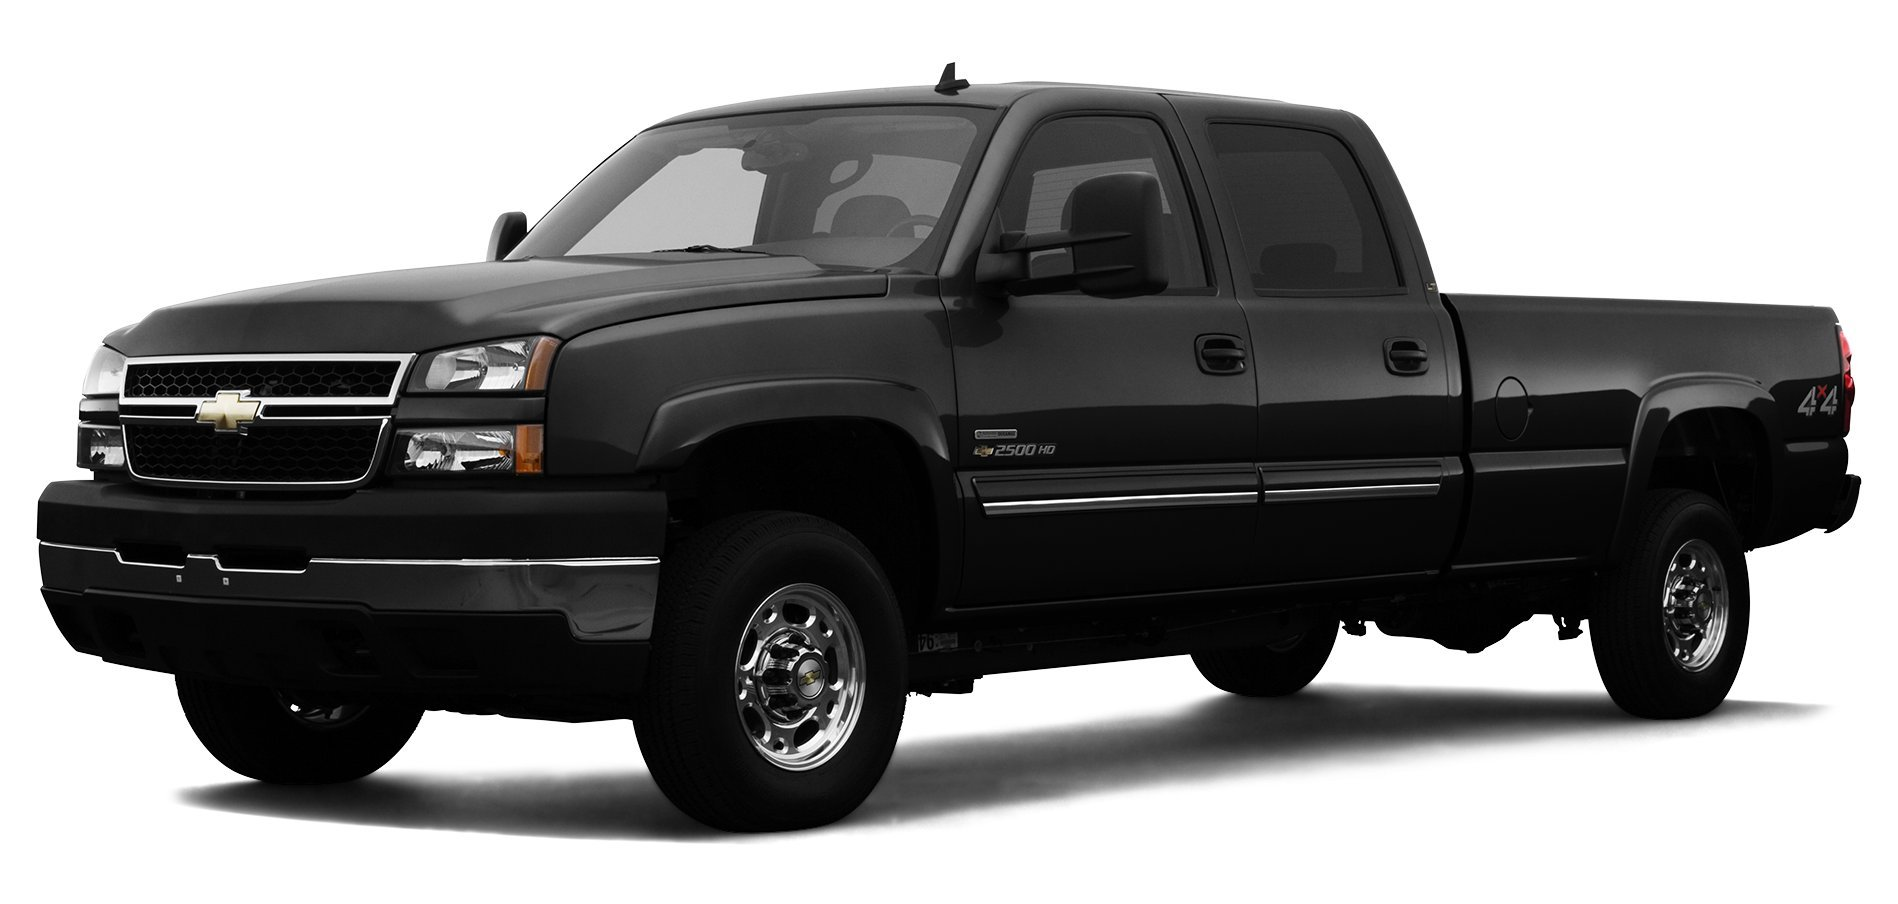 Silverado 2007 chevrolet silverado 2500 : Amazon.com: 2007 Chevrolet Silverado 2500 HD Classic Reviews ...